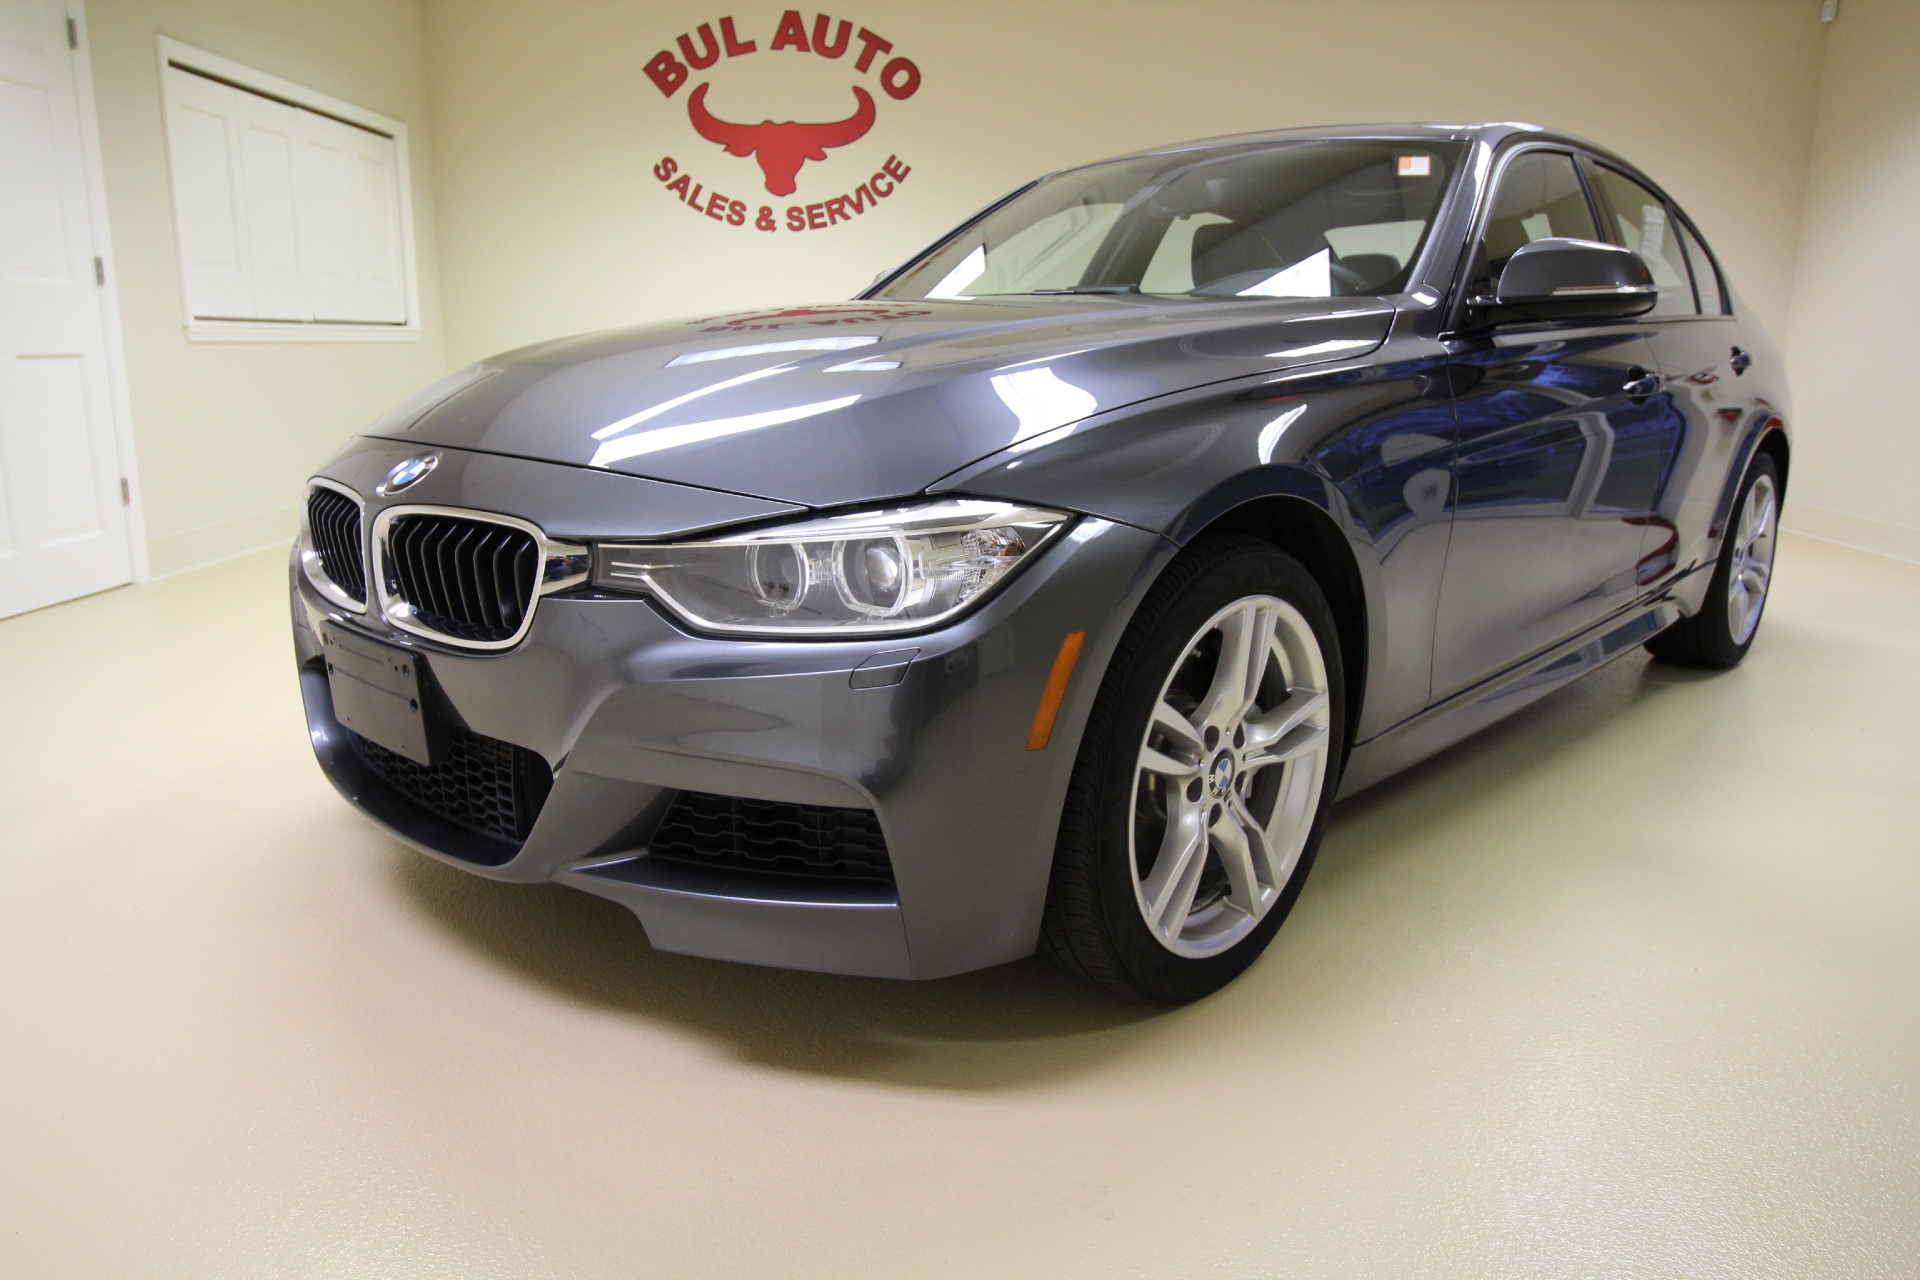 2013 Bmw 3 Series 335i Xdrive 6 Speed Manual Rare Msport